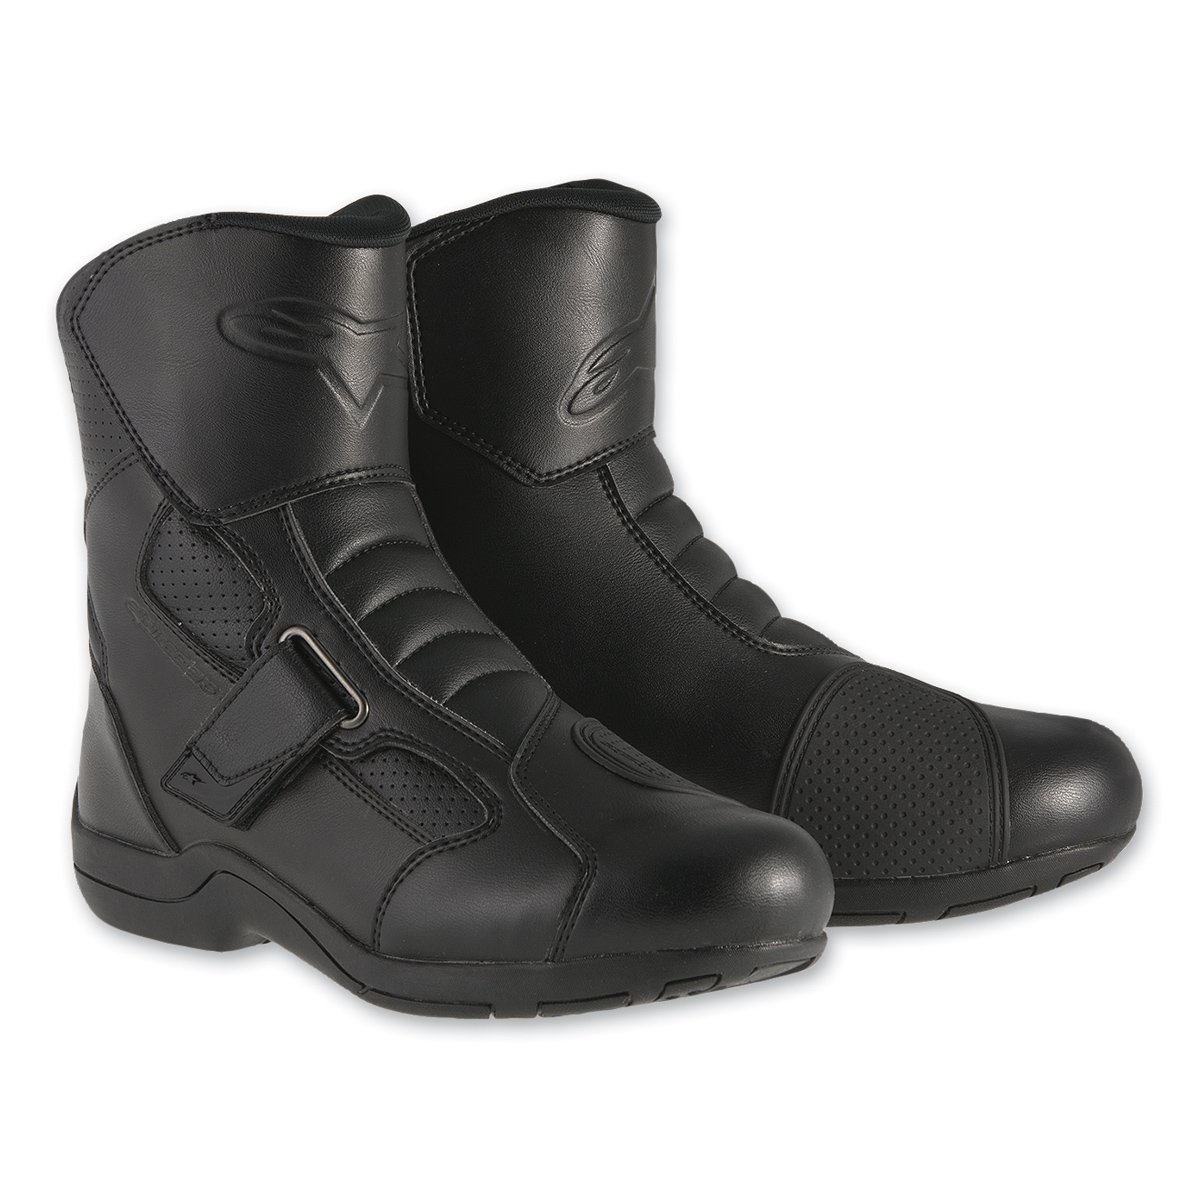 Alpinestars Ridge Waterproof Men's Street Motorcycle Boots (Black, EU Size 47) B01CENQZQI EU Size 47